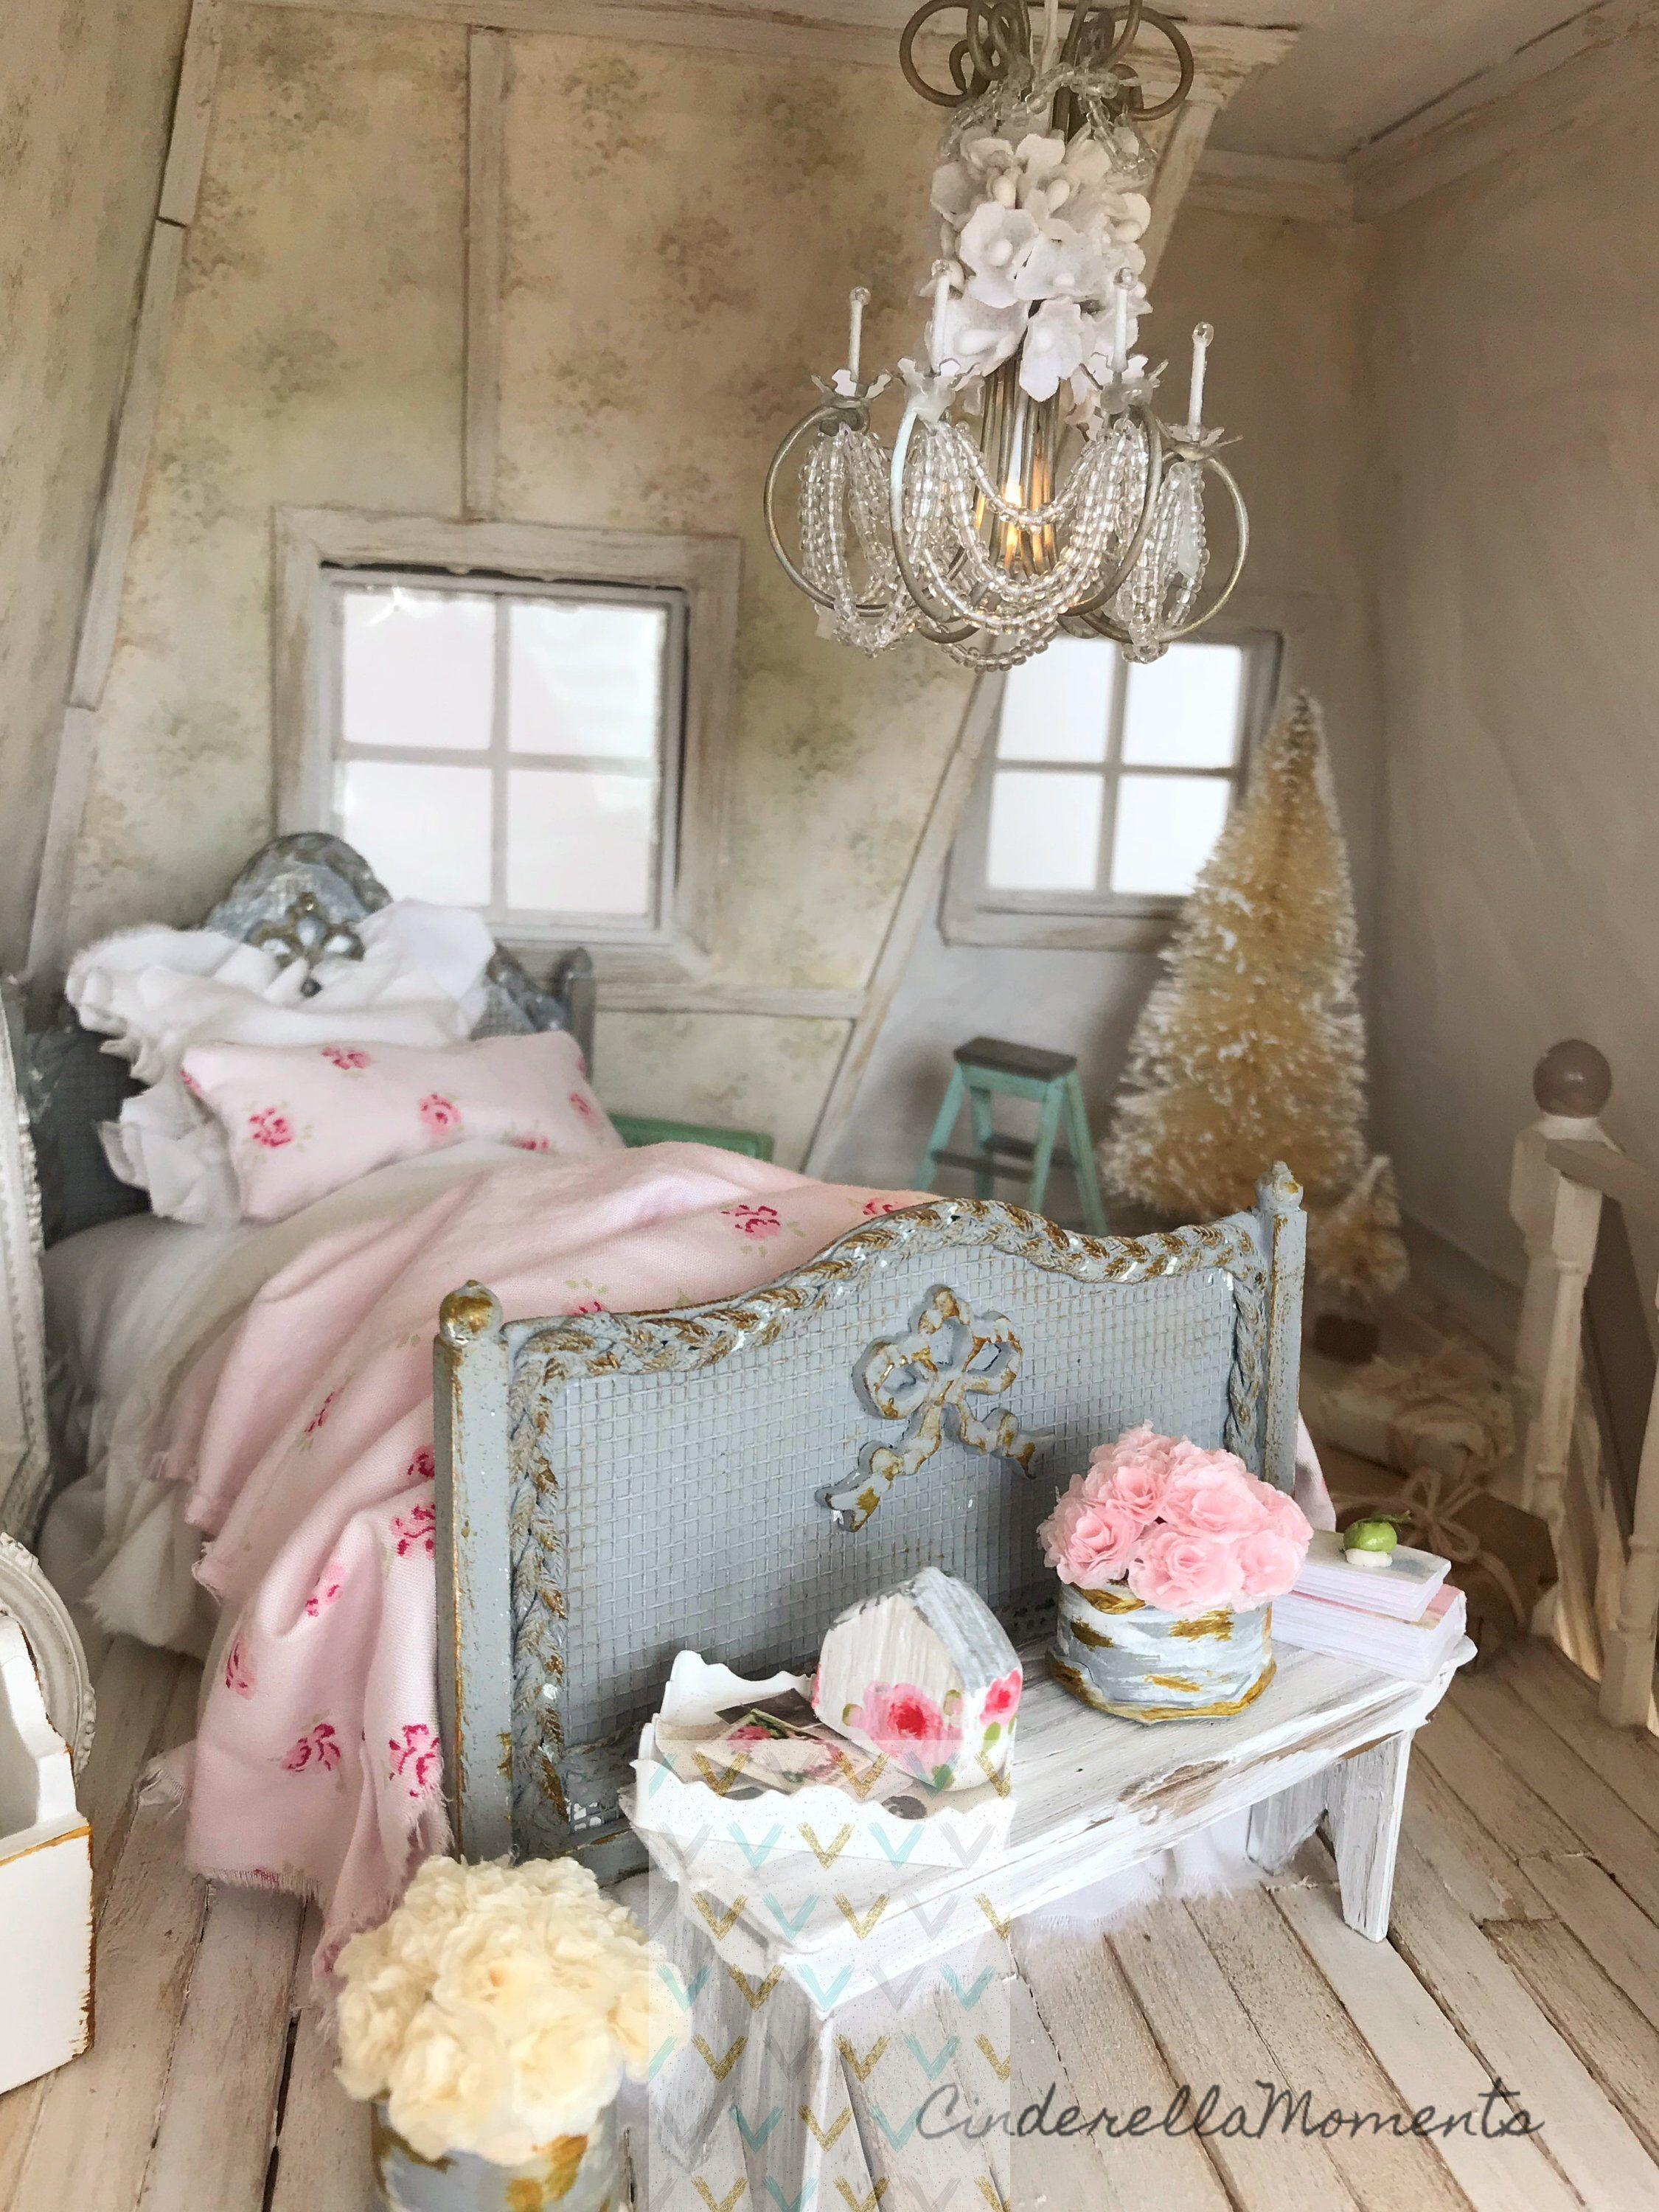 6 Surprising Unique Ideas Shabby Chic Wall Decor China Cabinets Diy Simple Pink L Room Bedrooms